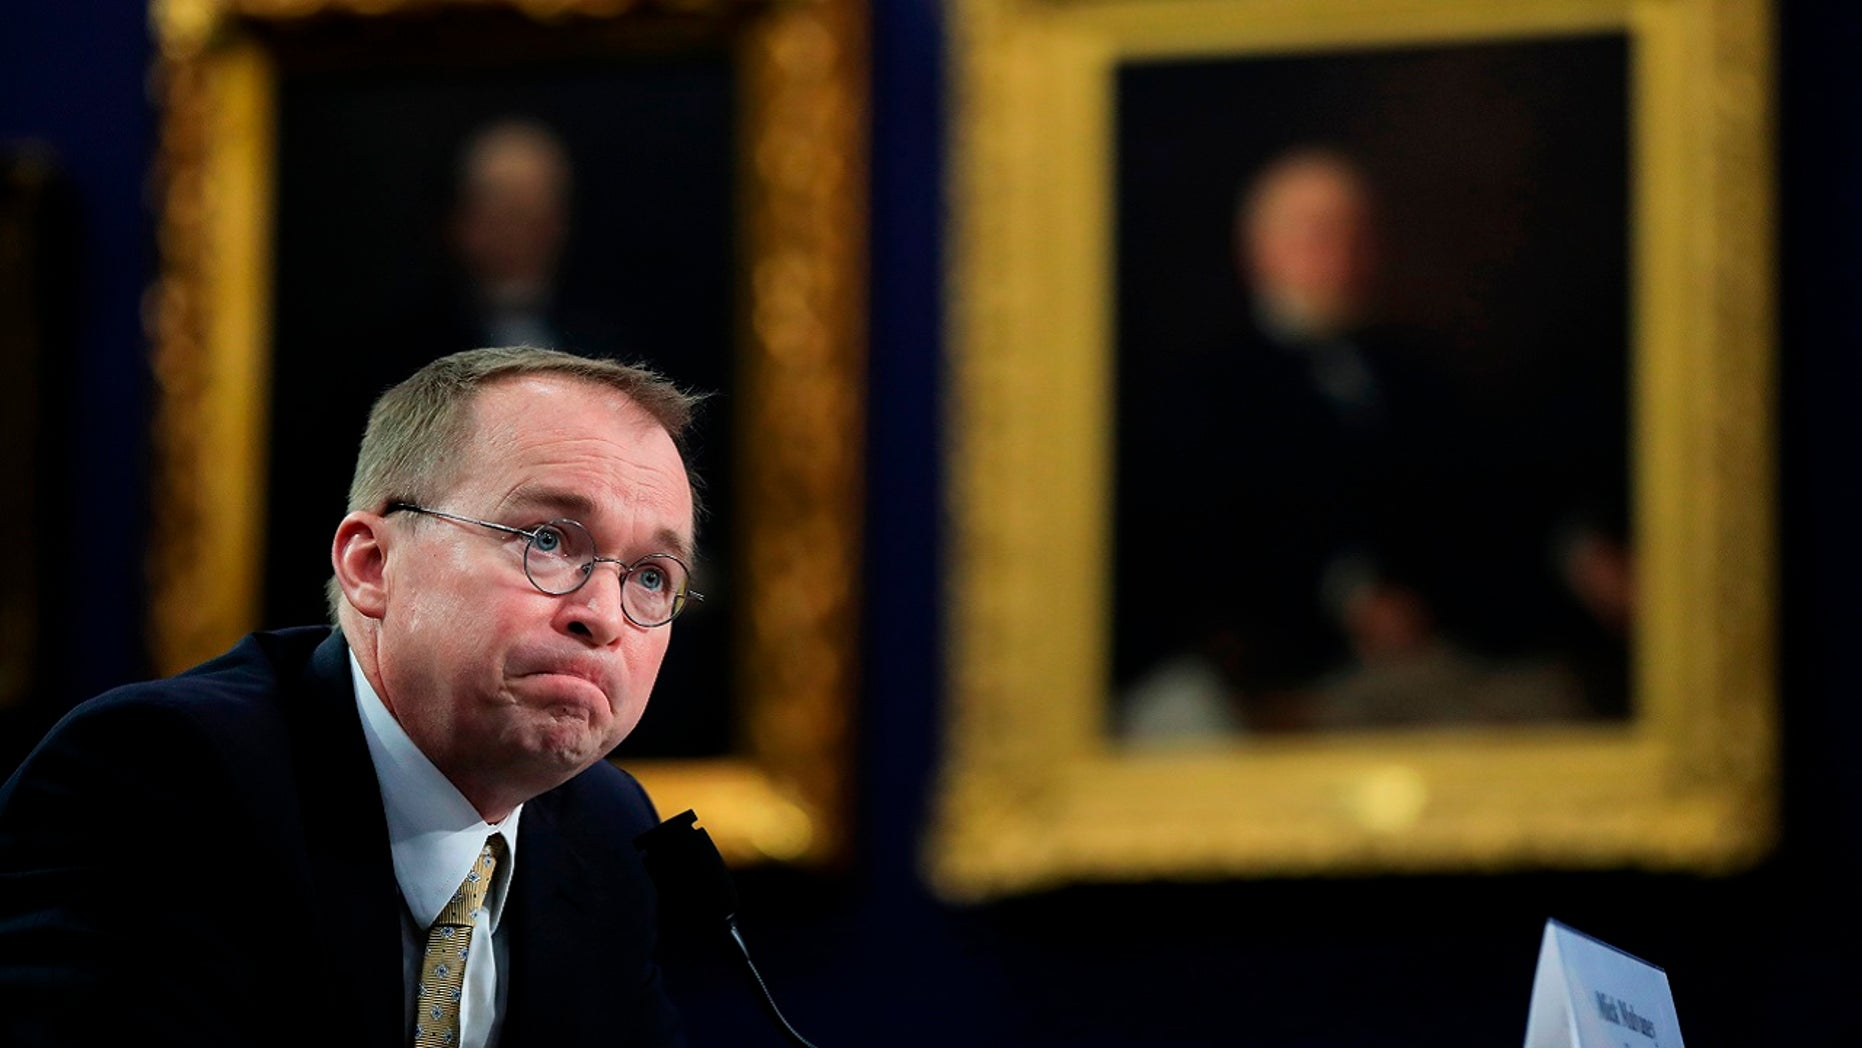 Mick Mulvaney, director of the U.S. Office of Management and Budget, testifies at a House Appropriations Committee hearing in Washington, April 18, 2018.